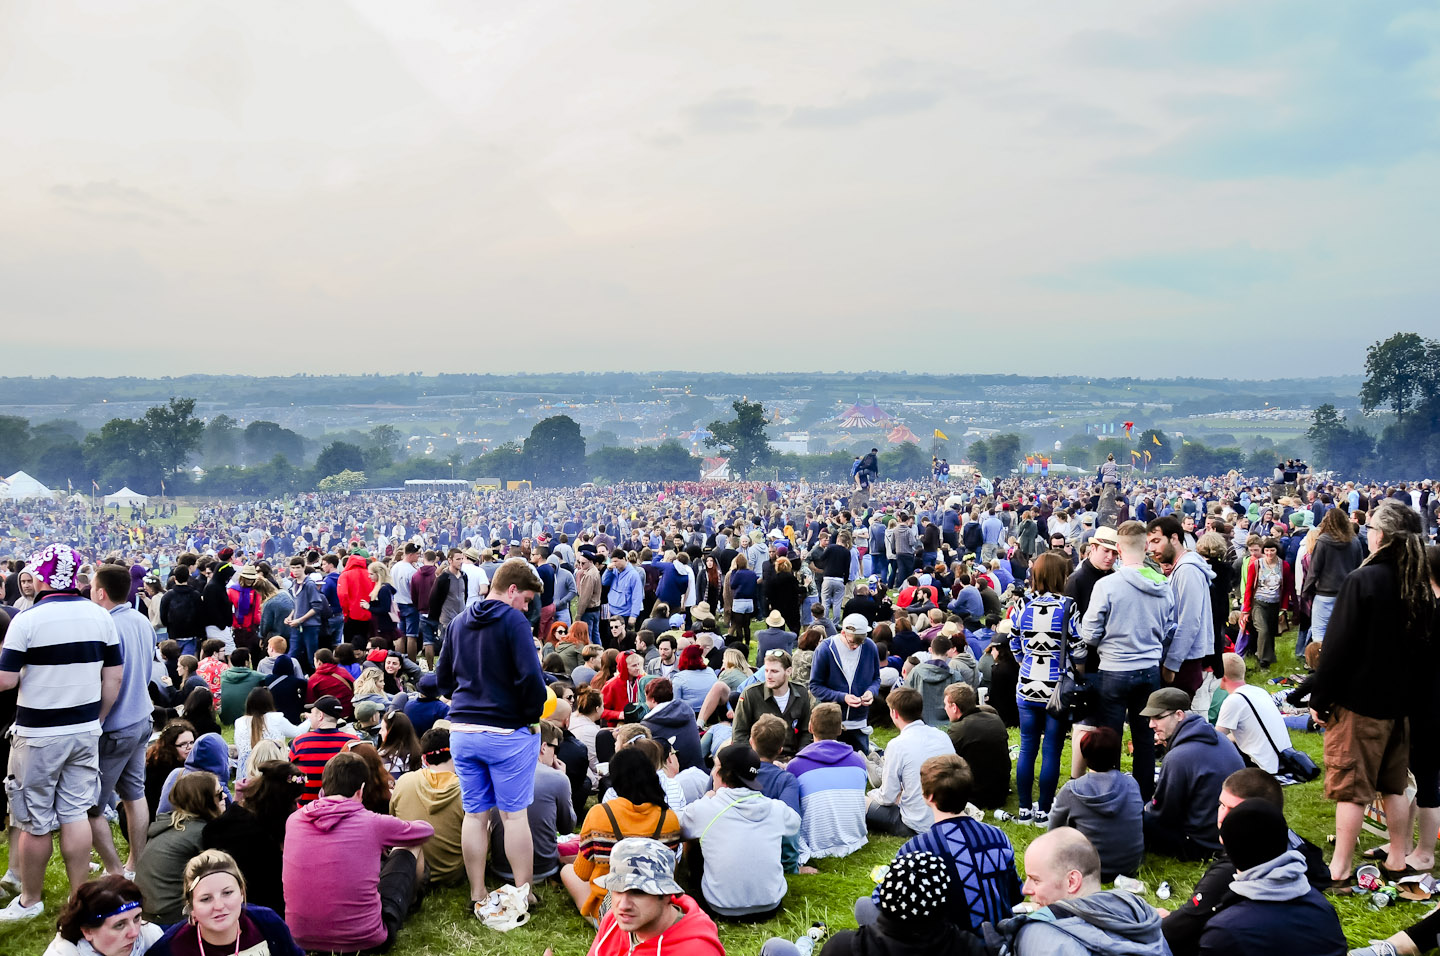 Glastonbury2013©LPDP_130626_016.jpg